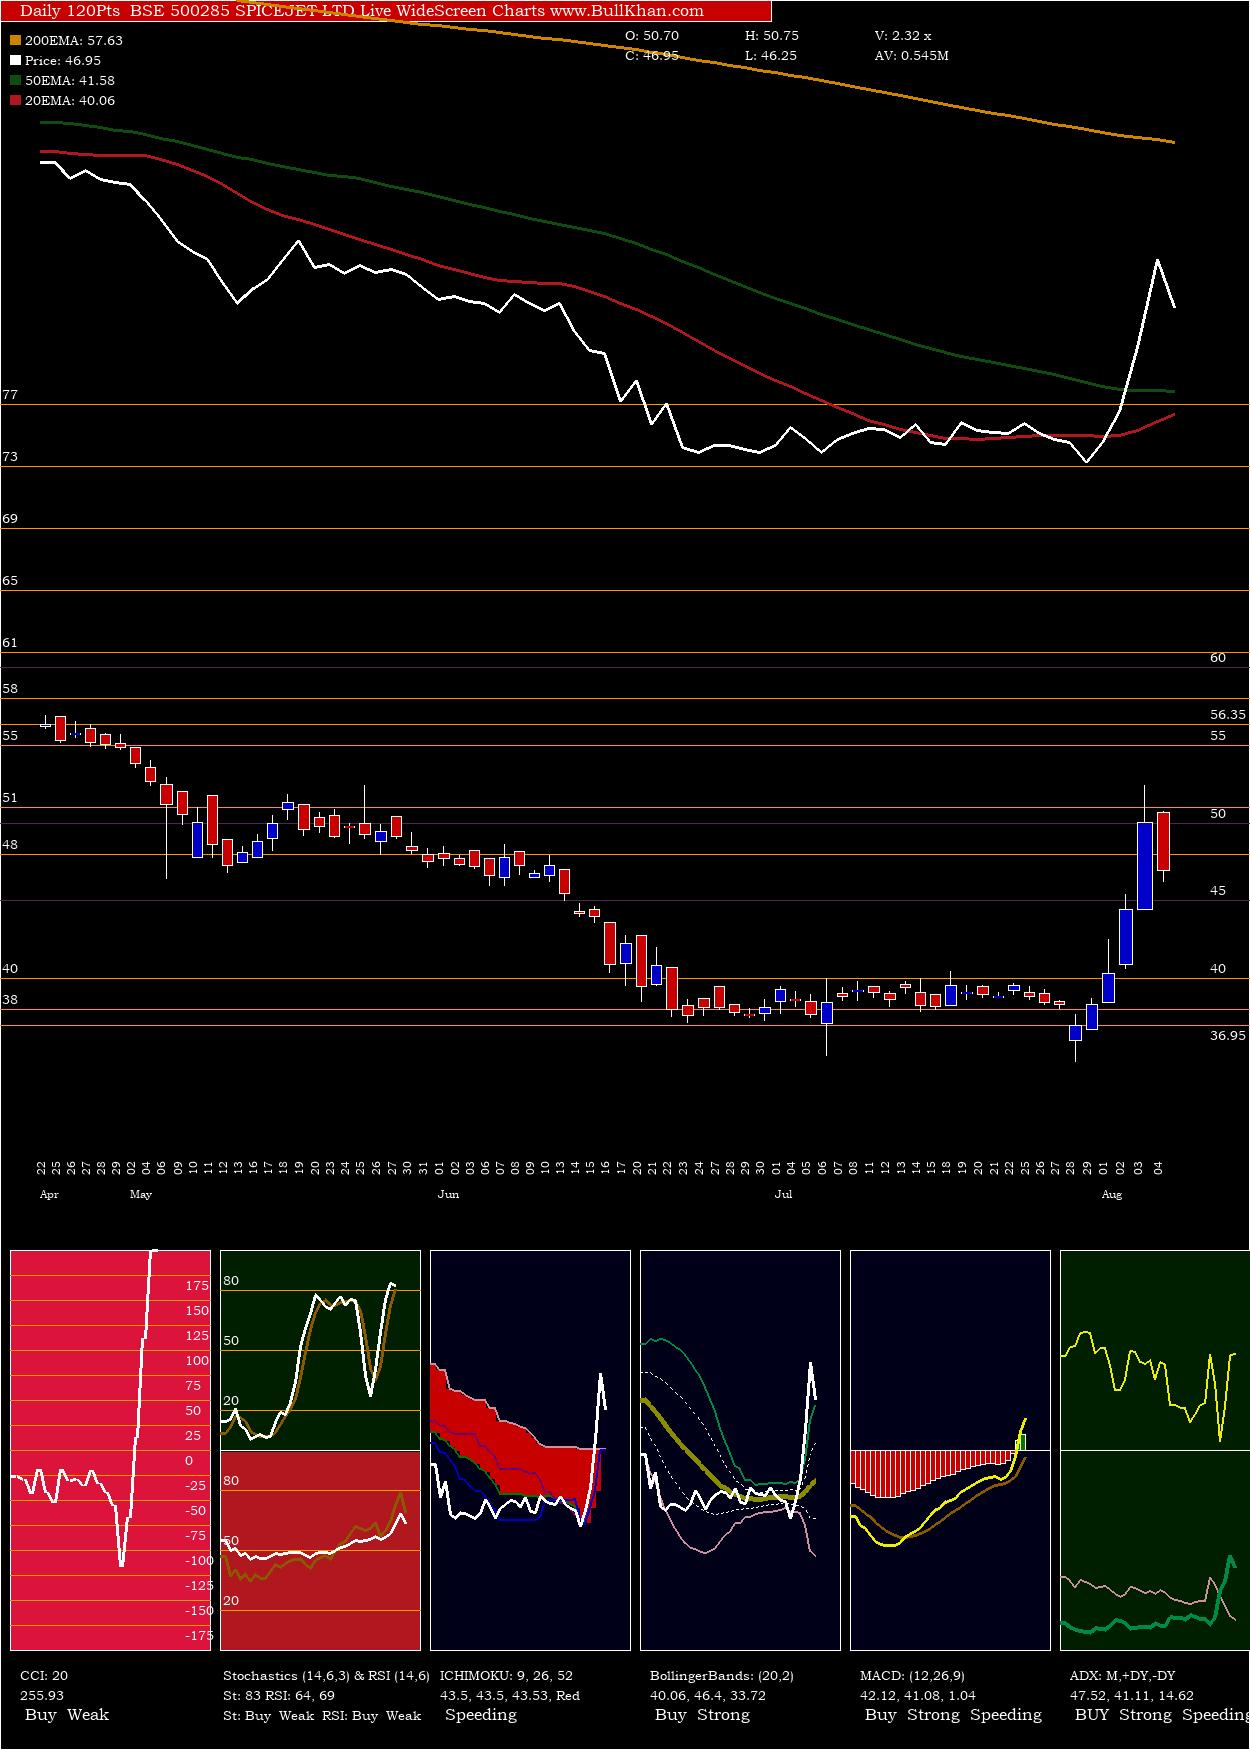 Spicejet charts and indicators